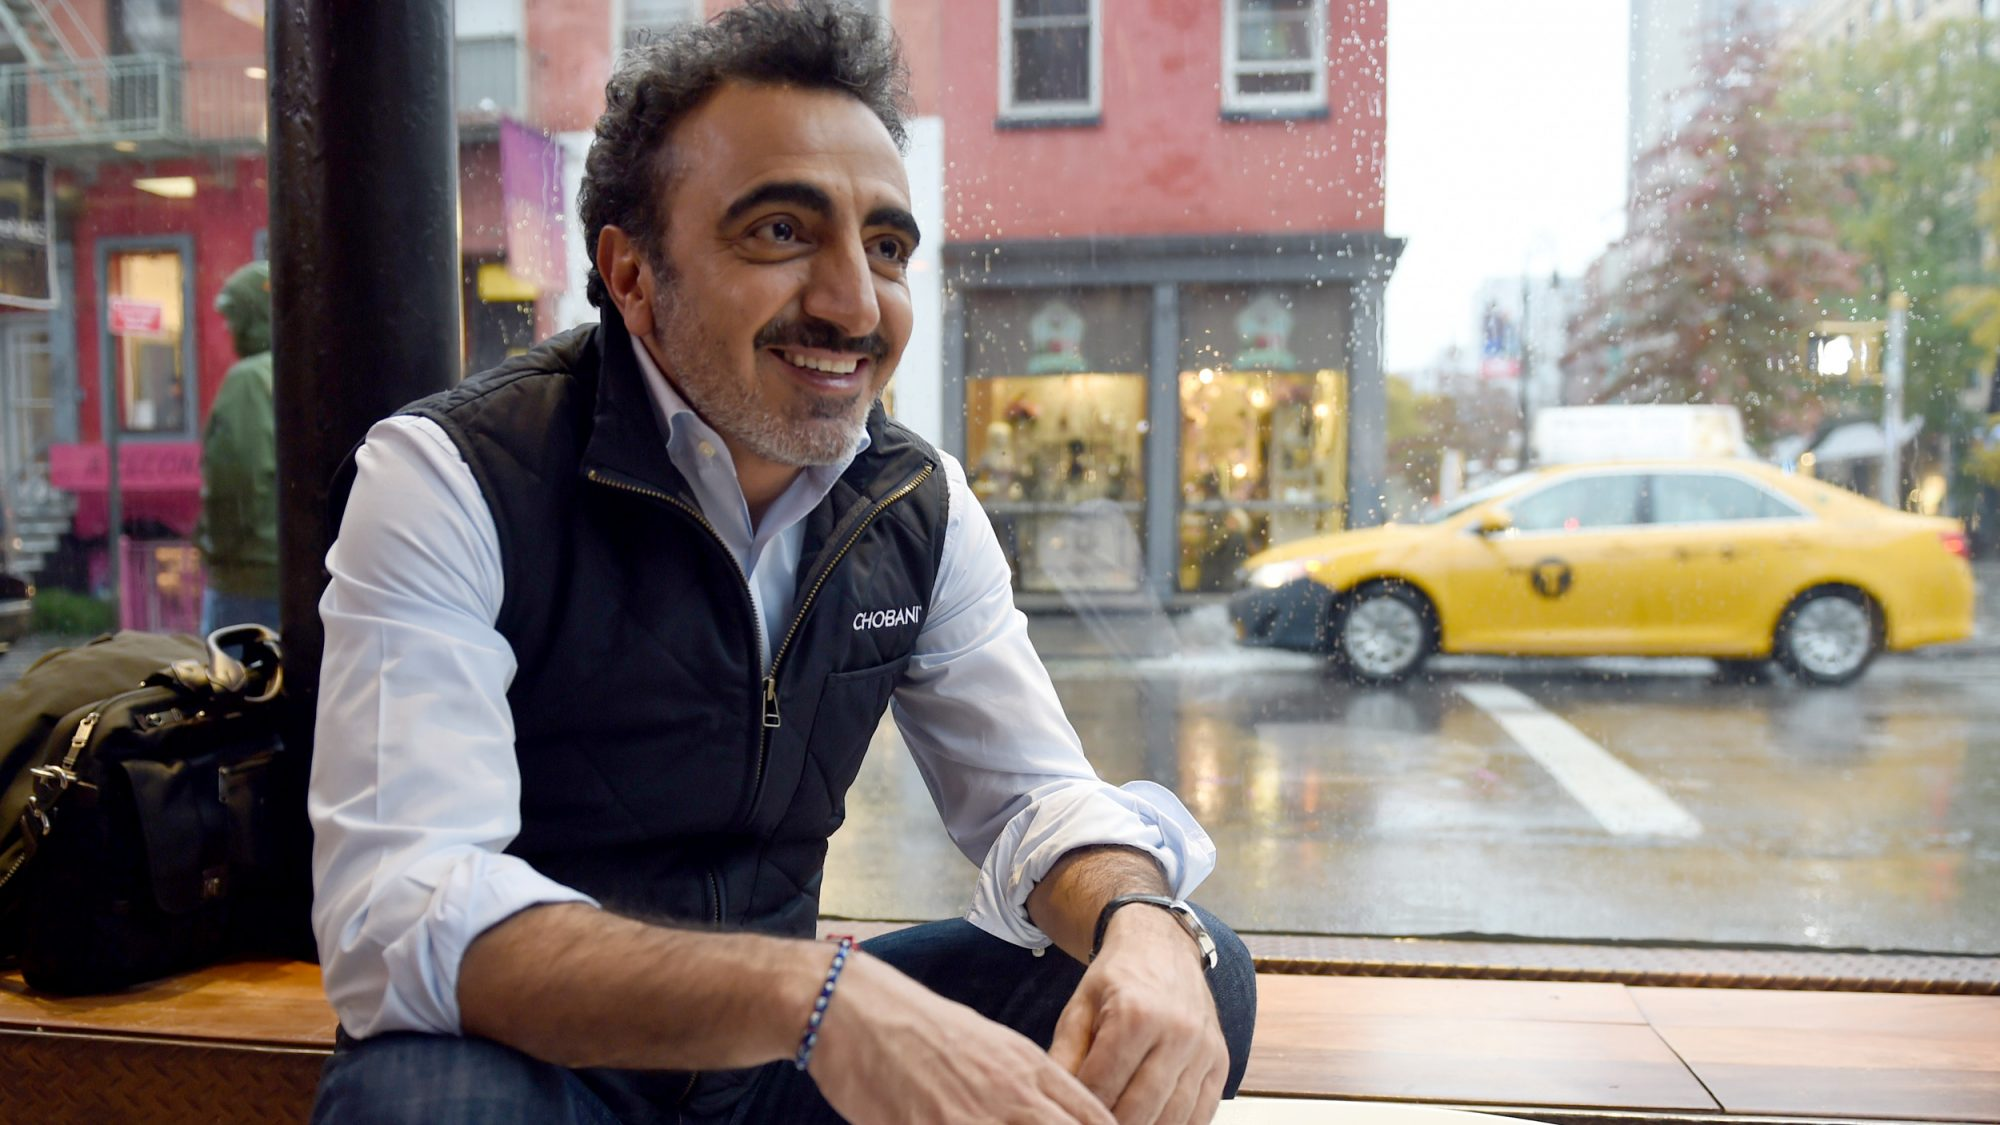 Chobani's New Paid Family Leave Policy